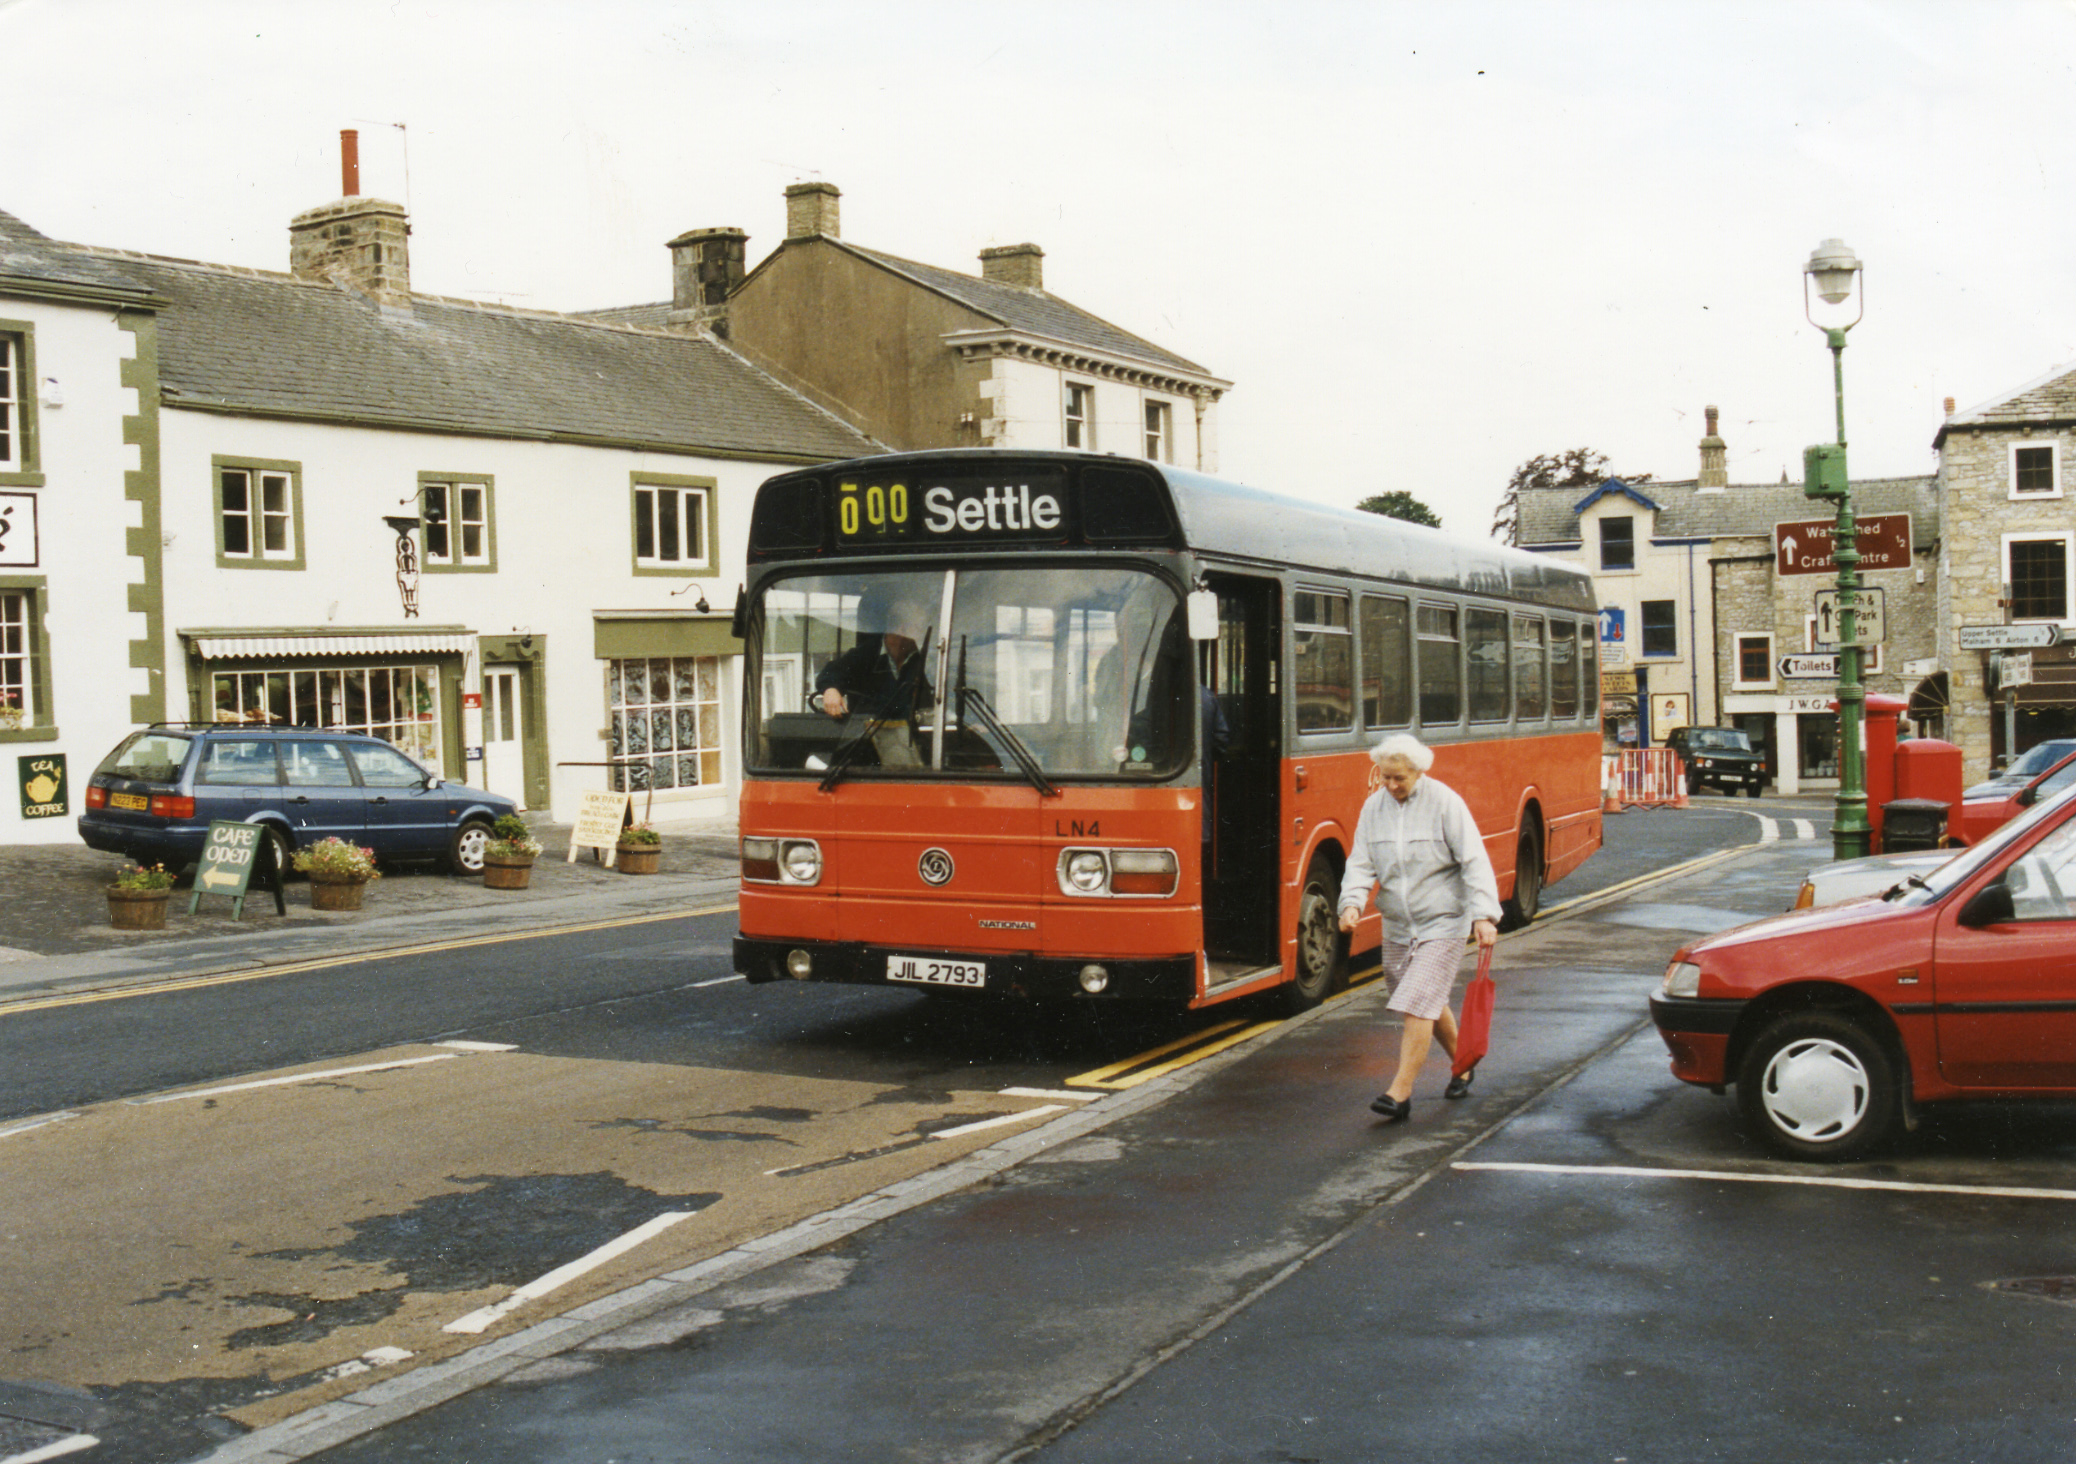 A Pennine bus in Settle